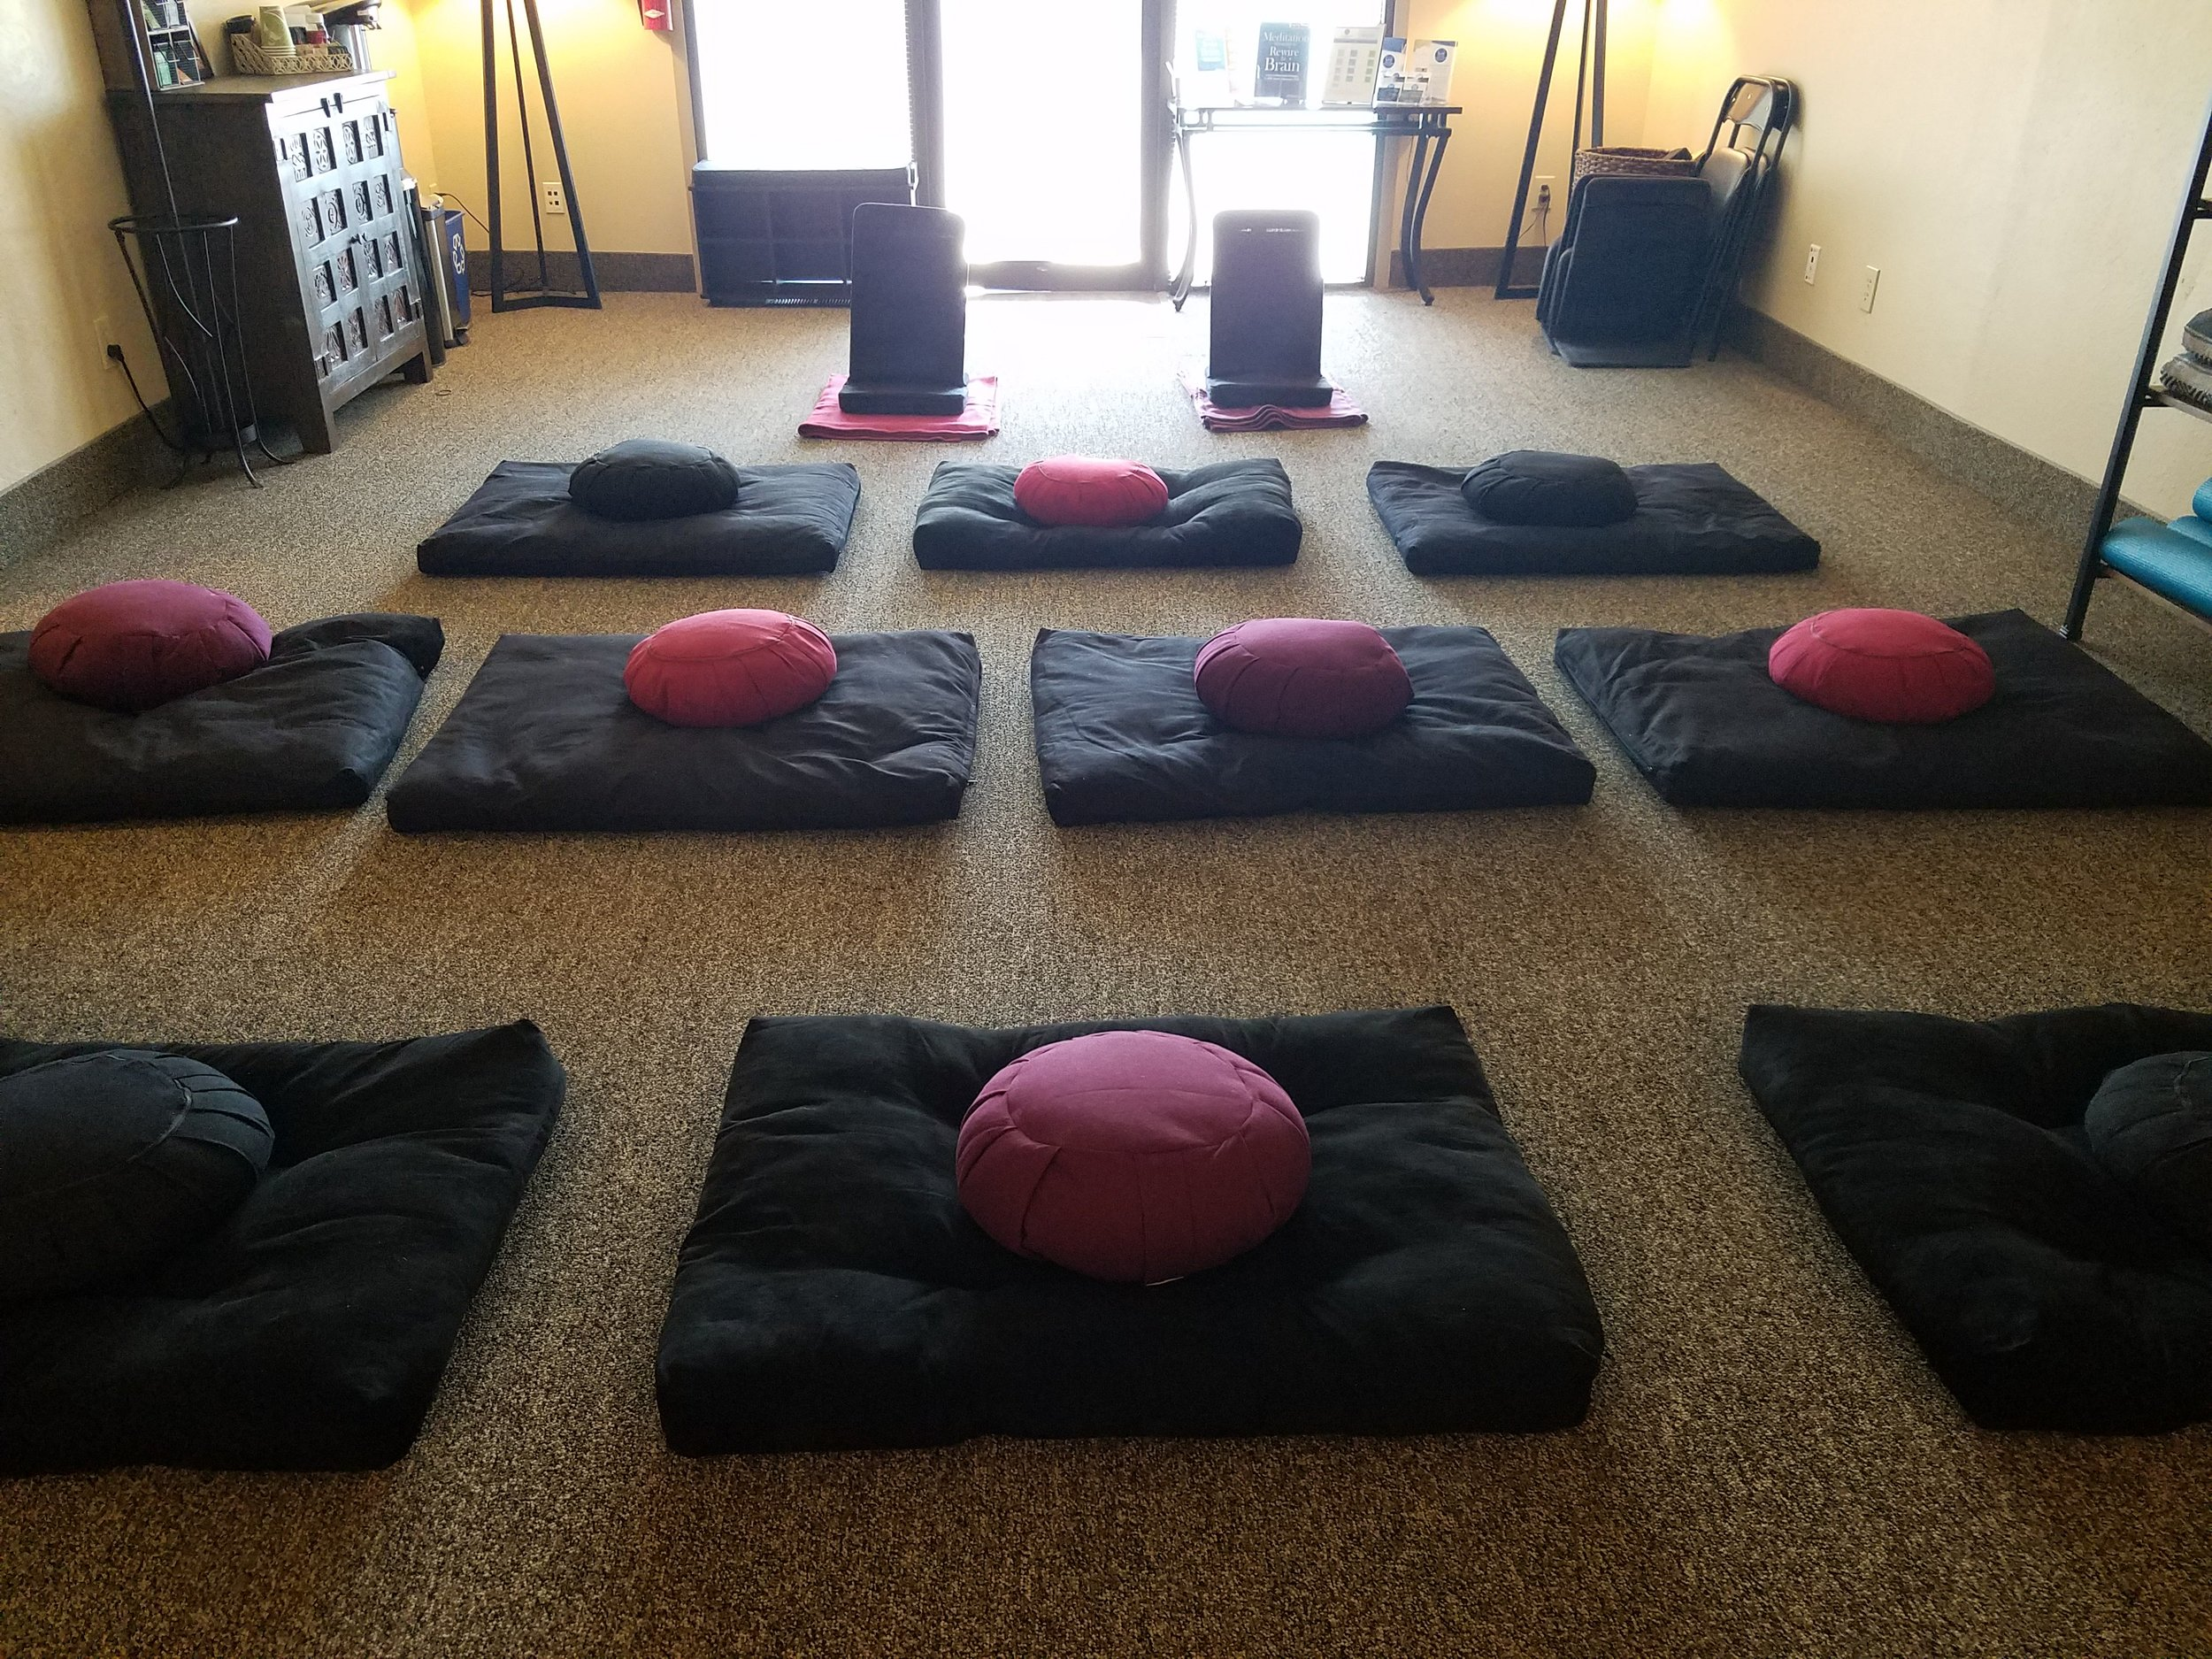 The lobby of the NeuroMeditation Institute, set up for a meditation class in Corvallis, OR